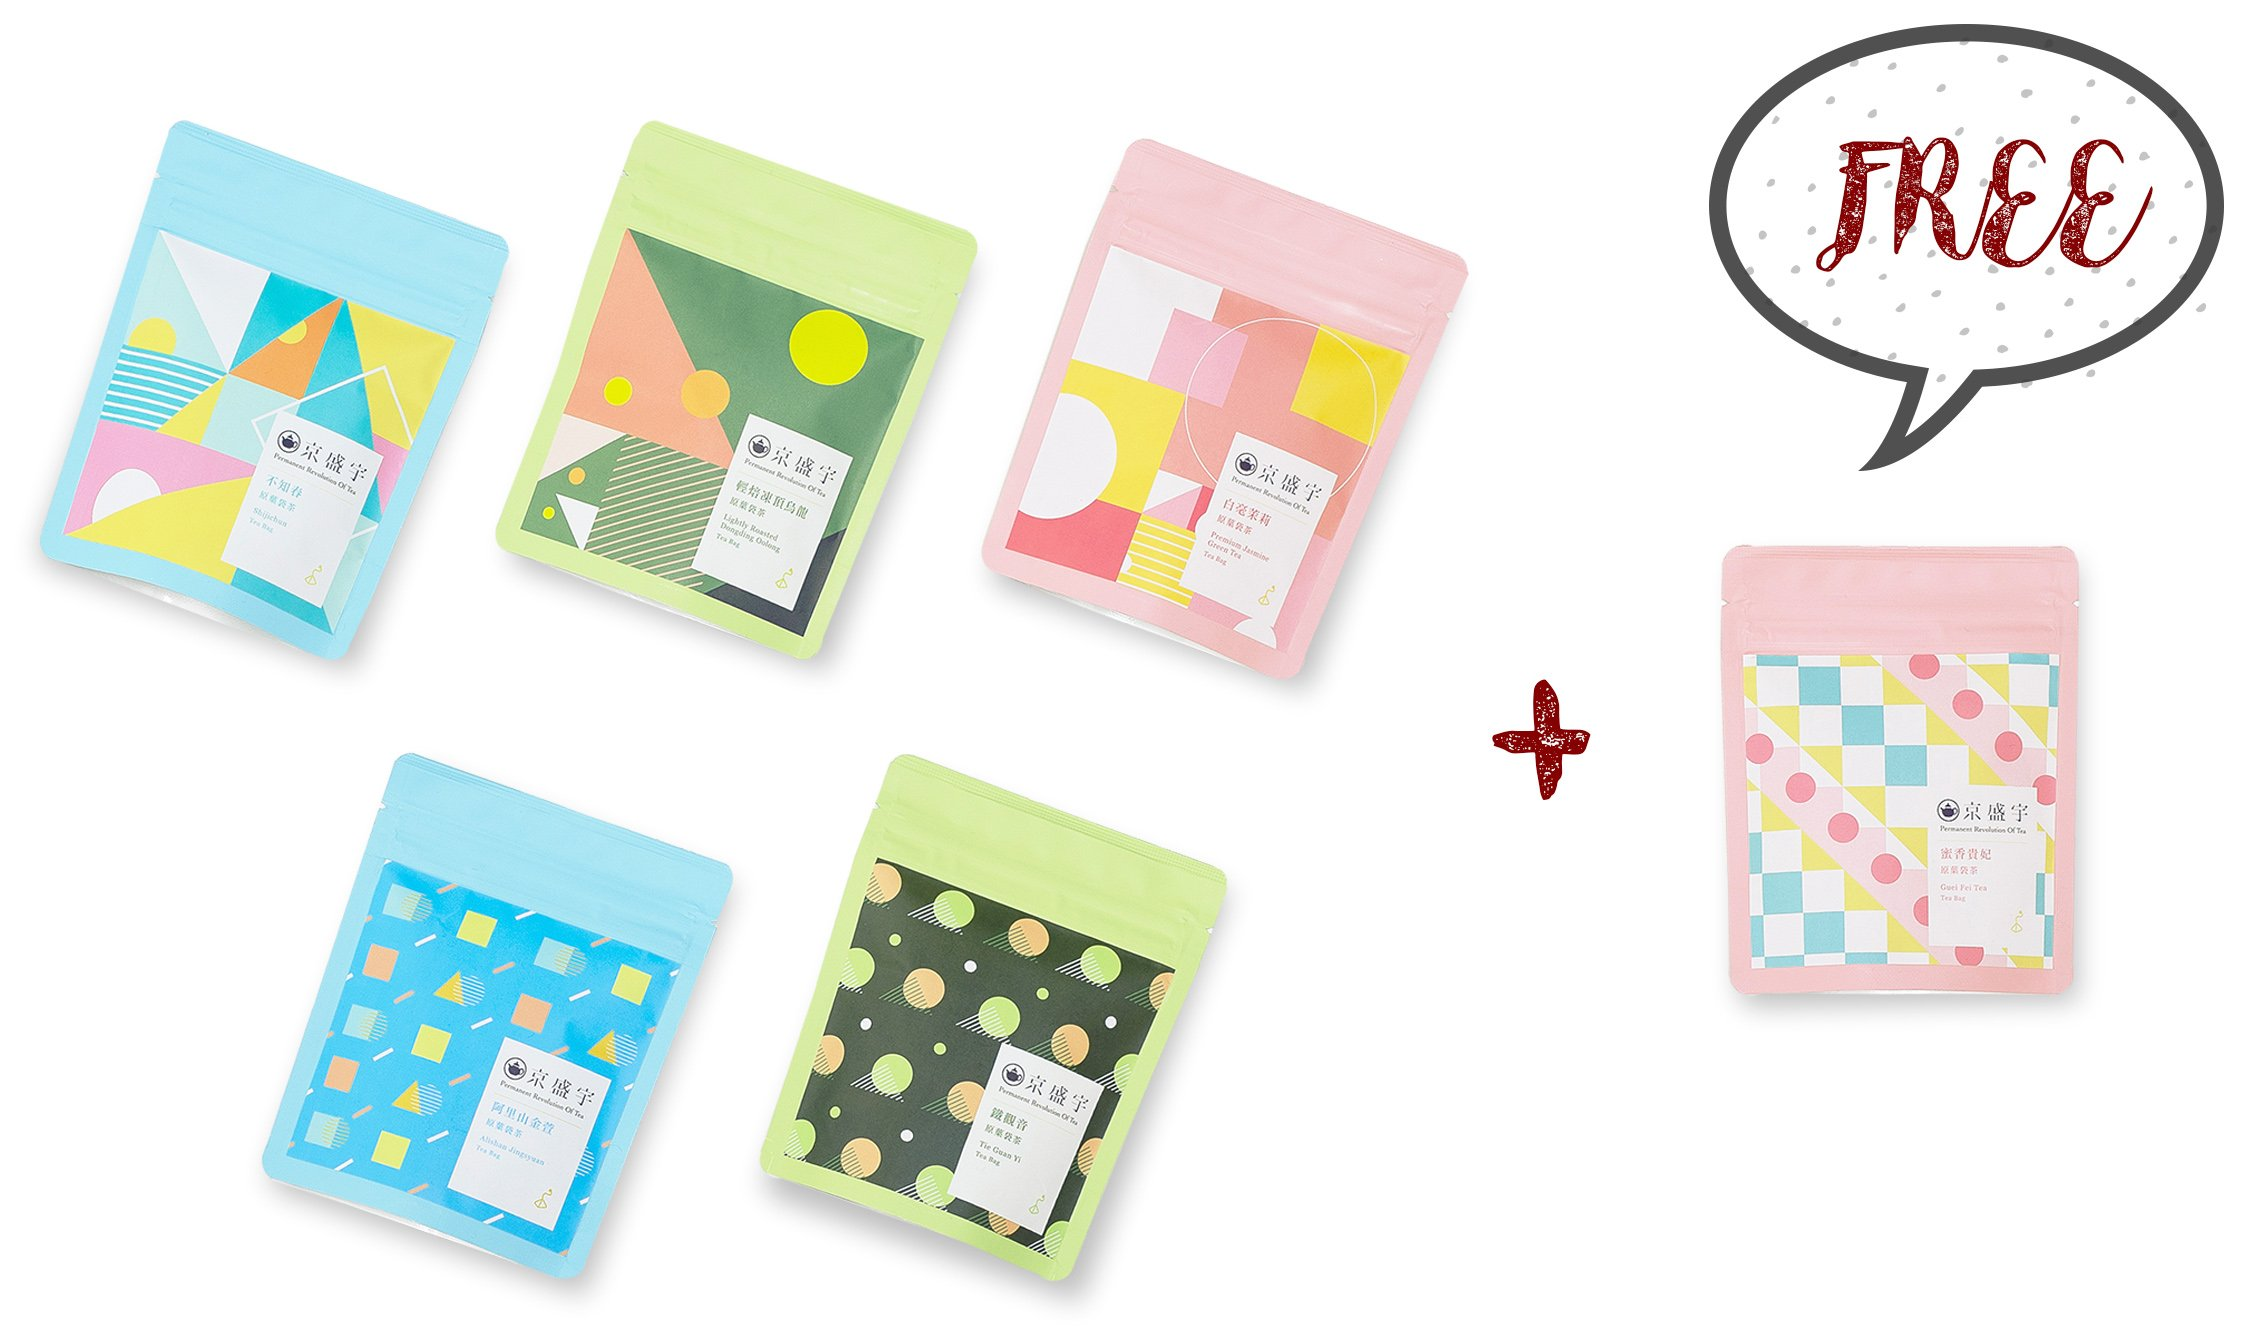 6 Packs in a Set, Premium Taiwan Tea, Variety Pack with 6 Flavors, 7 Bags a Pack, Buy 5 get 1 Free! by Jing Sheng Yu